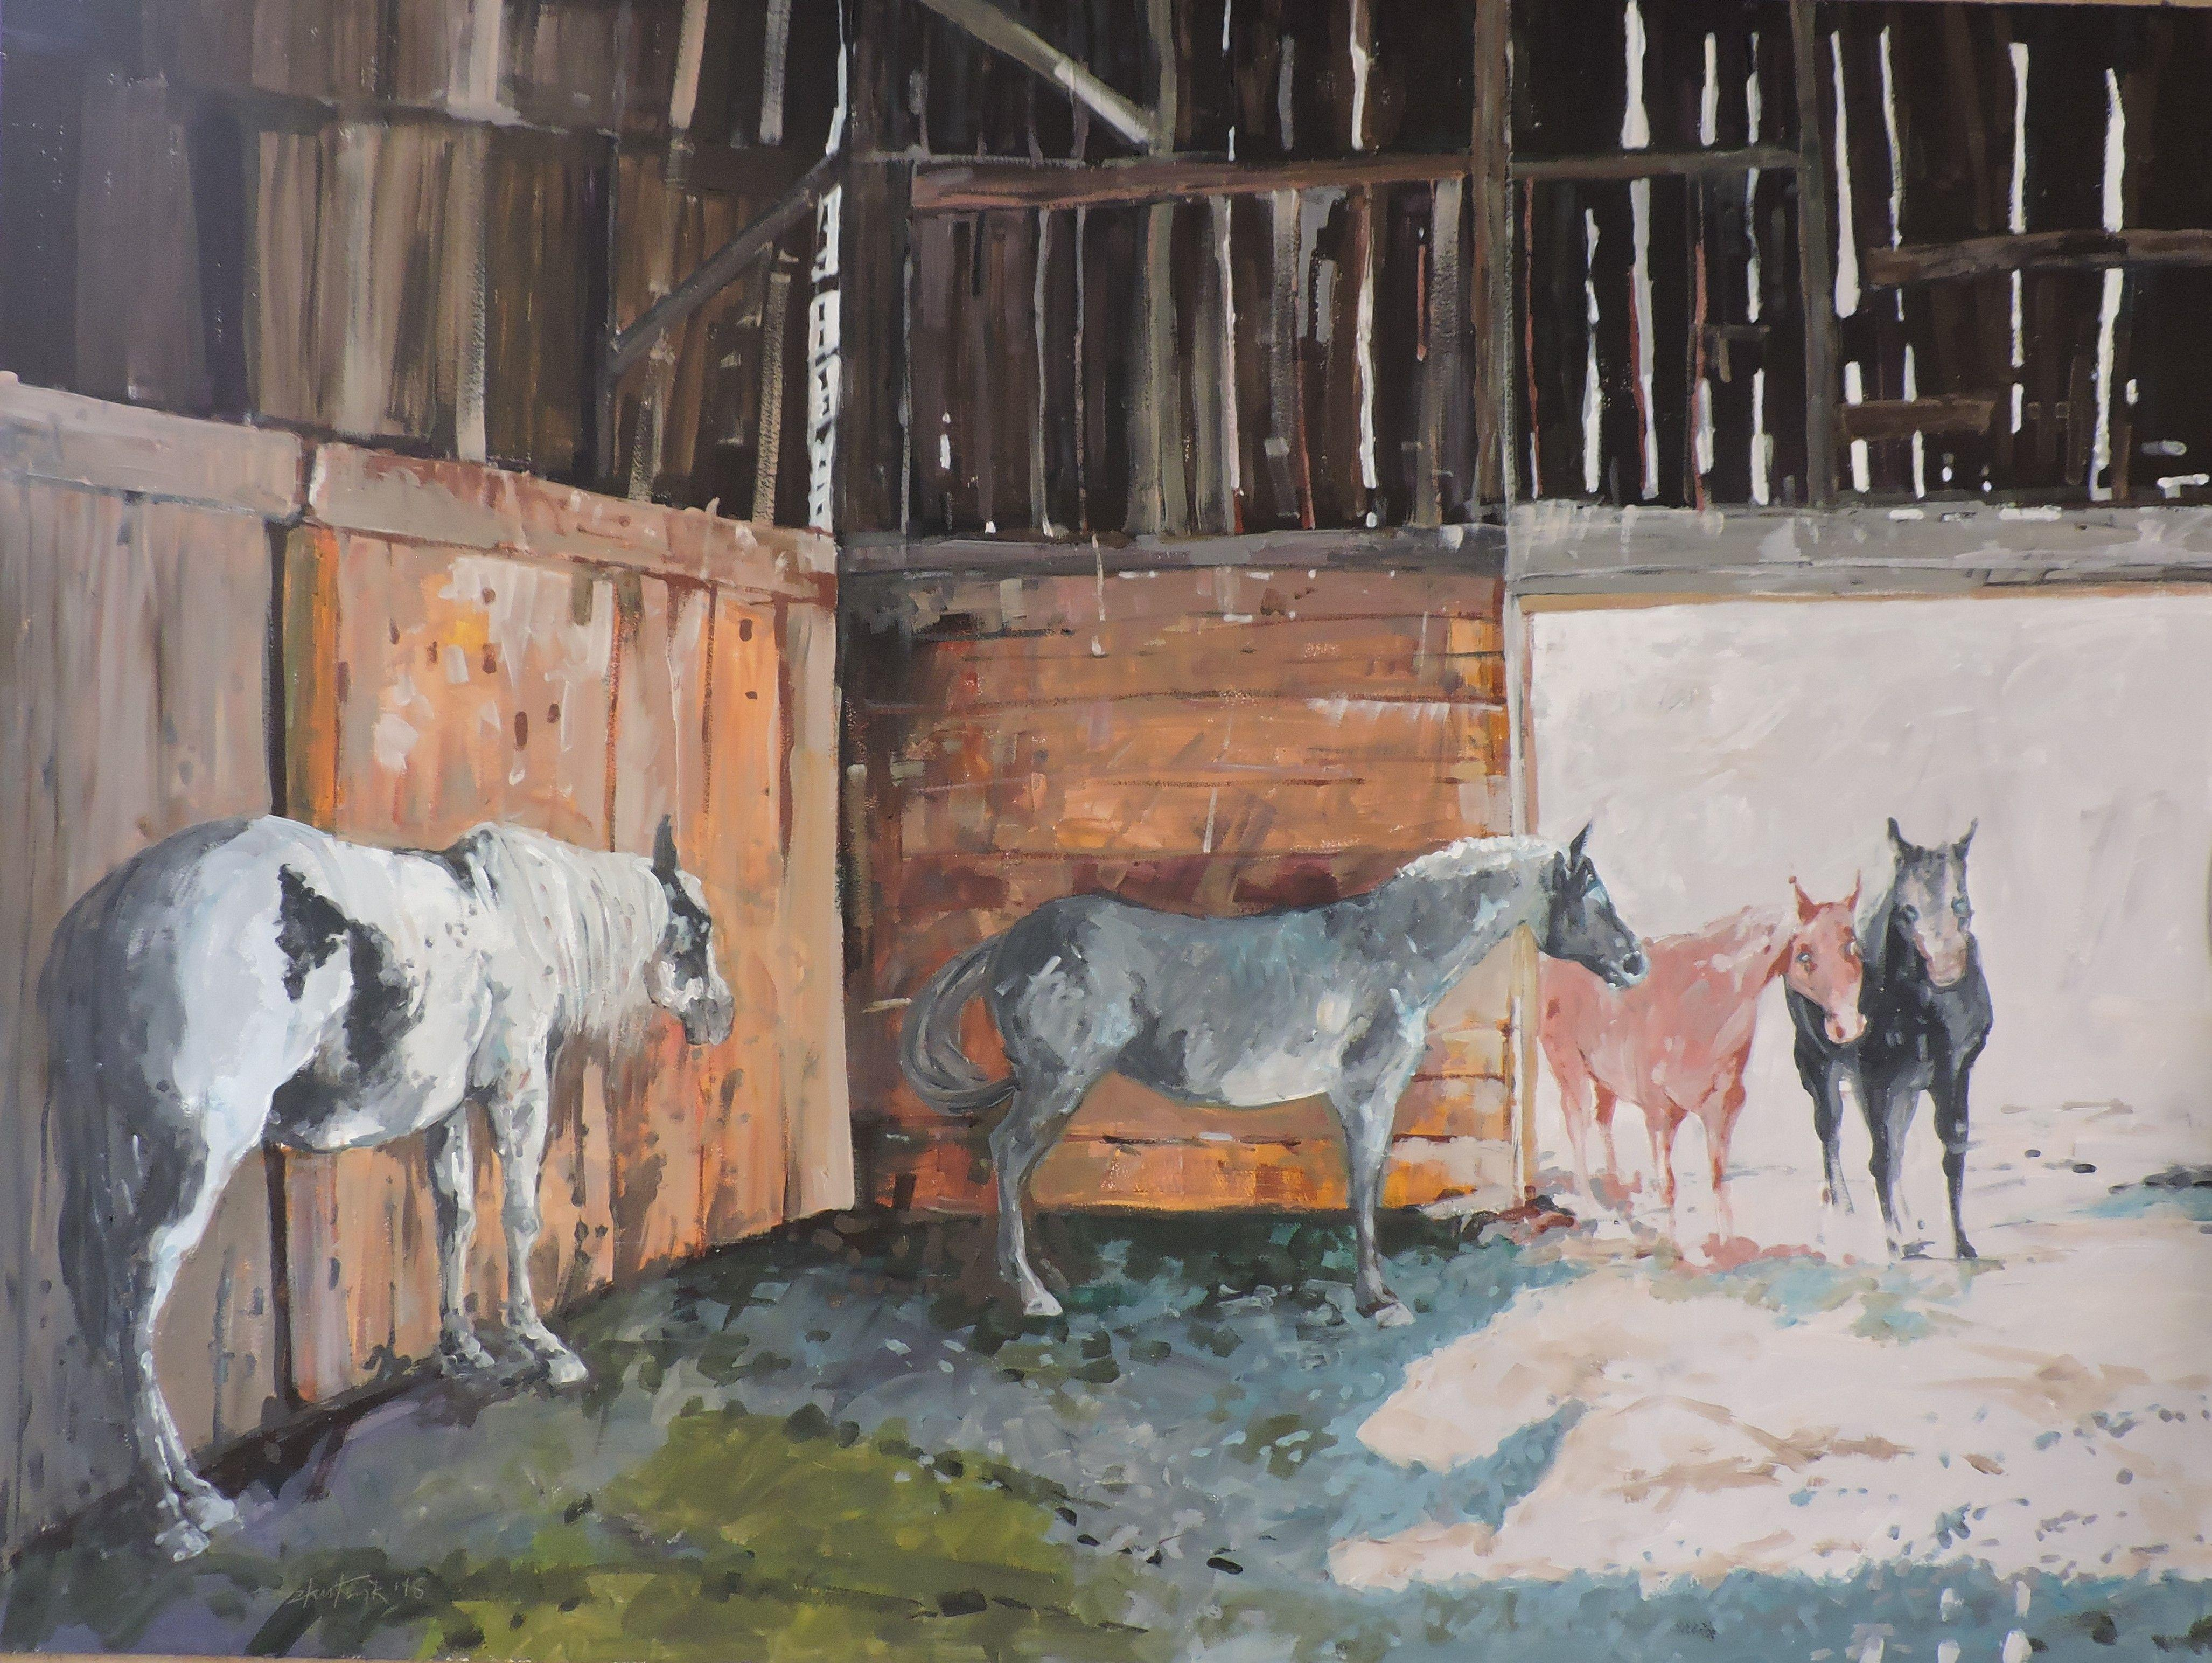 Inside Barn, Painting, Oil on Other